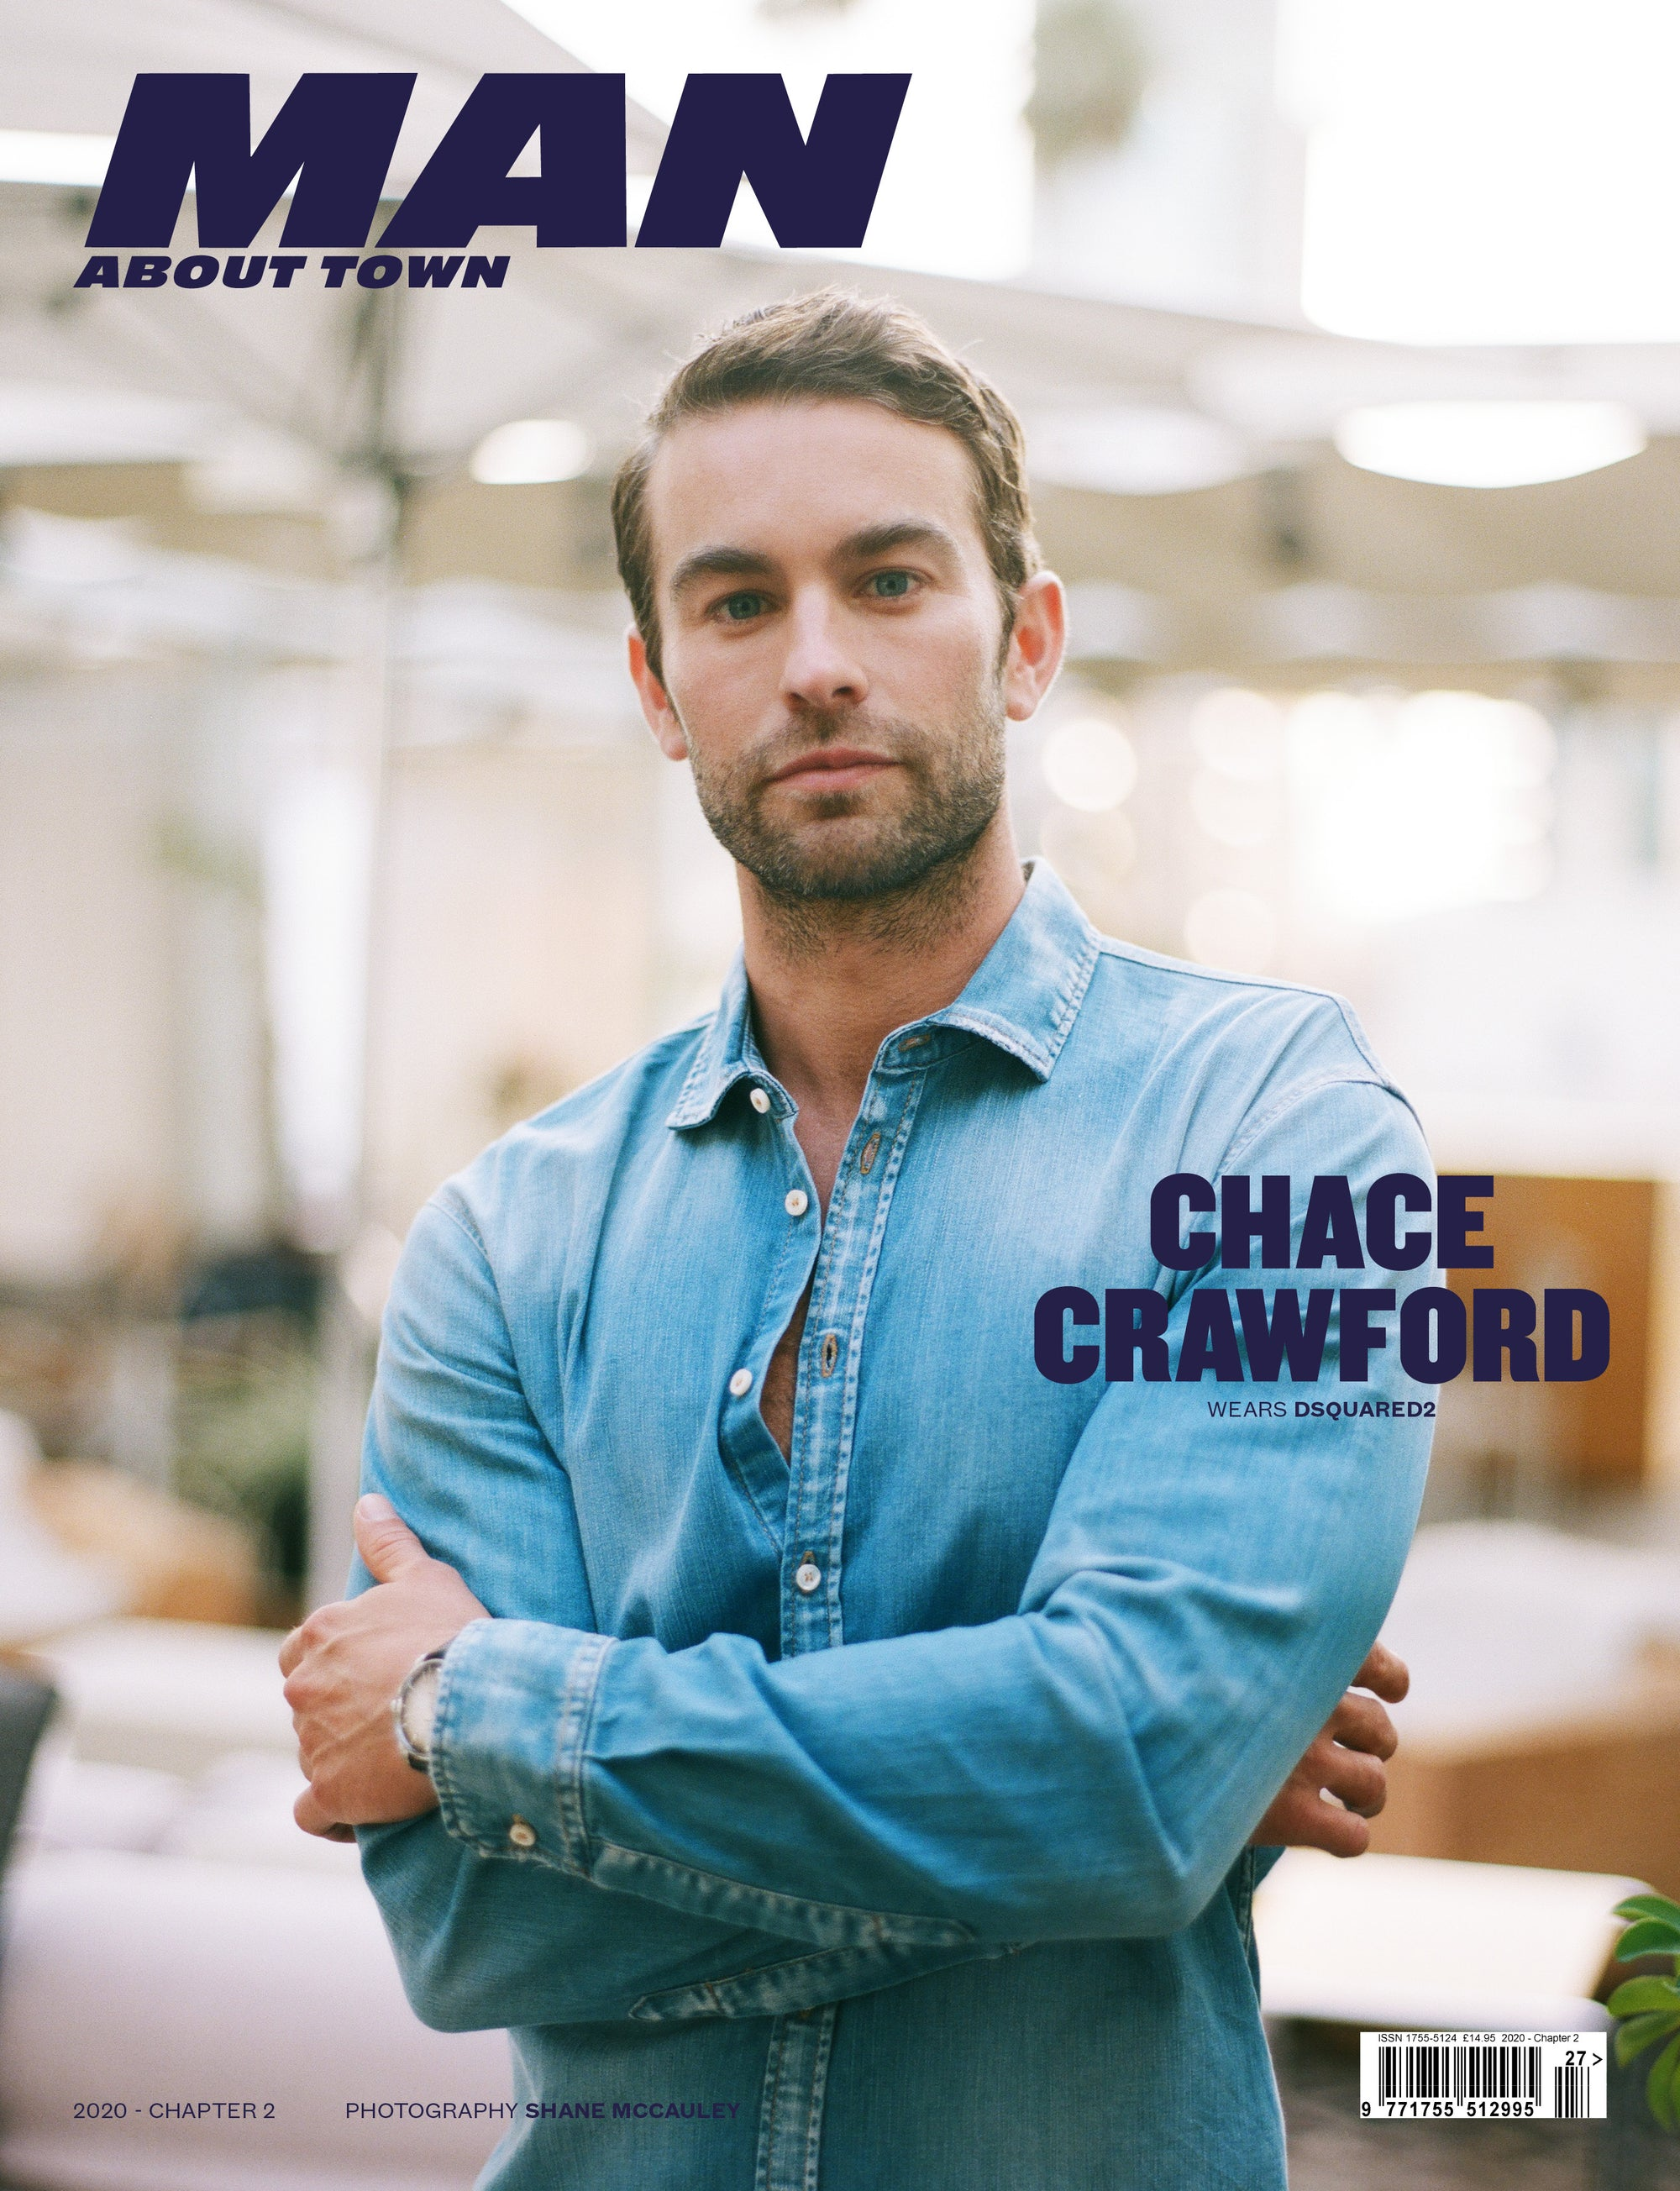 CHACE CRAWFORD wears DSQUARED2 covers Man About Town 2020, Chapter II